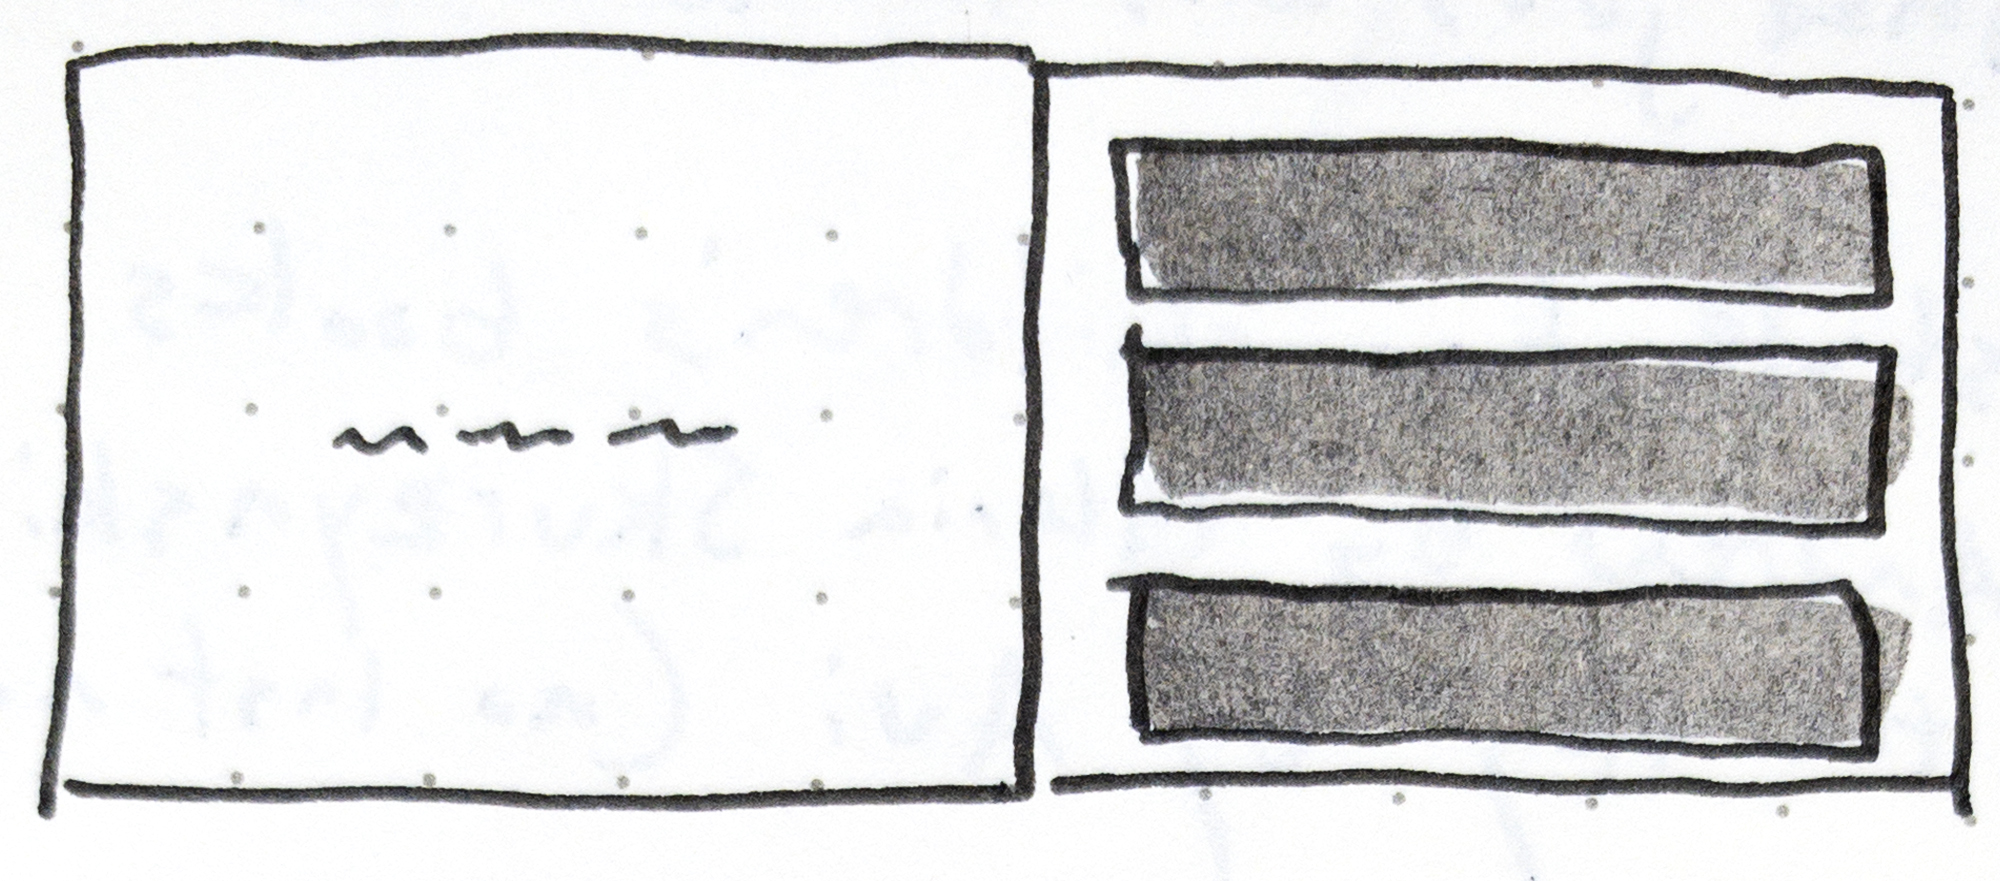 Fig. 1 - Sketch from my notes of a stacked three-panel layout on the right page with words on the left page in David Wiesner's children's book,  Tuesday .